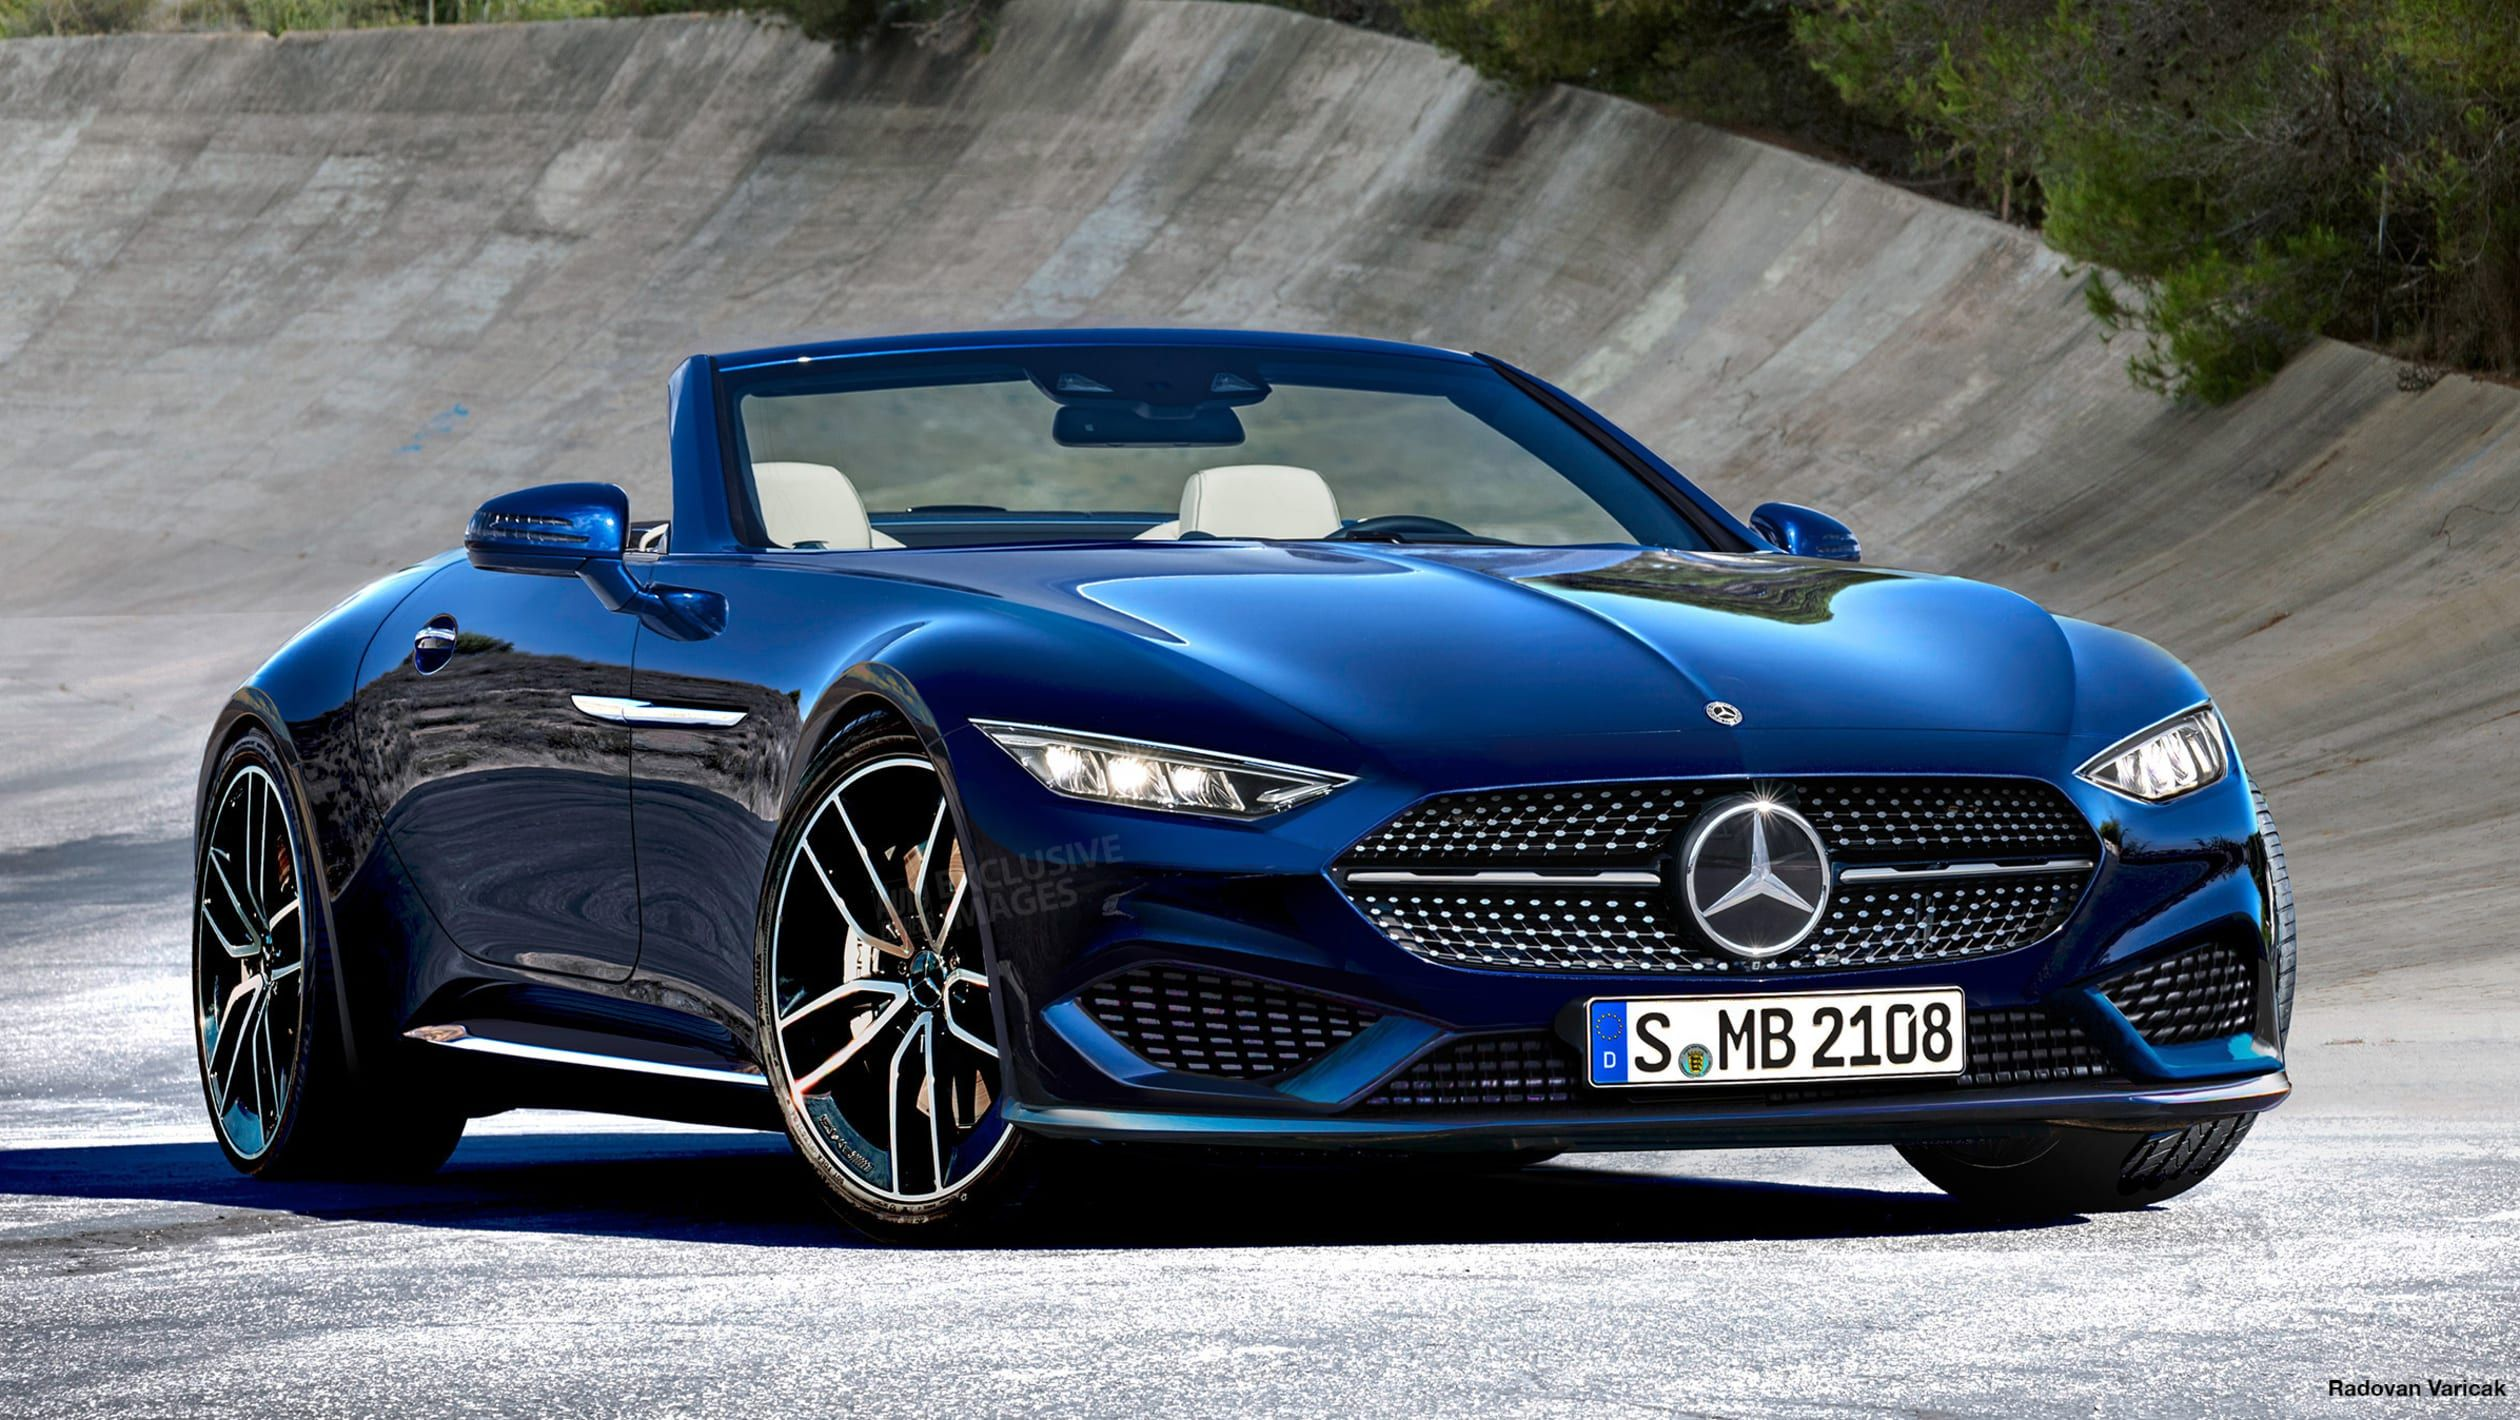 New 2021 Mercedes Sl To Be Developed By Amg With 2 2 Layout Pictures Auto Express Mercedes Sl Mercedes Car Models Mercedes Benz Cars